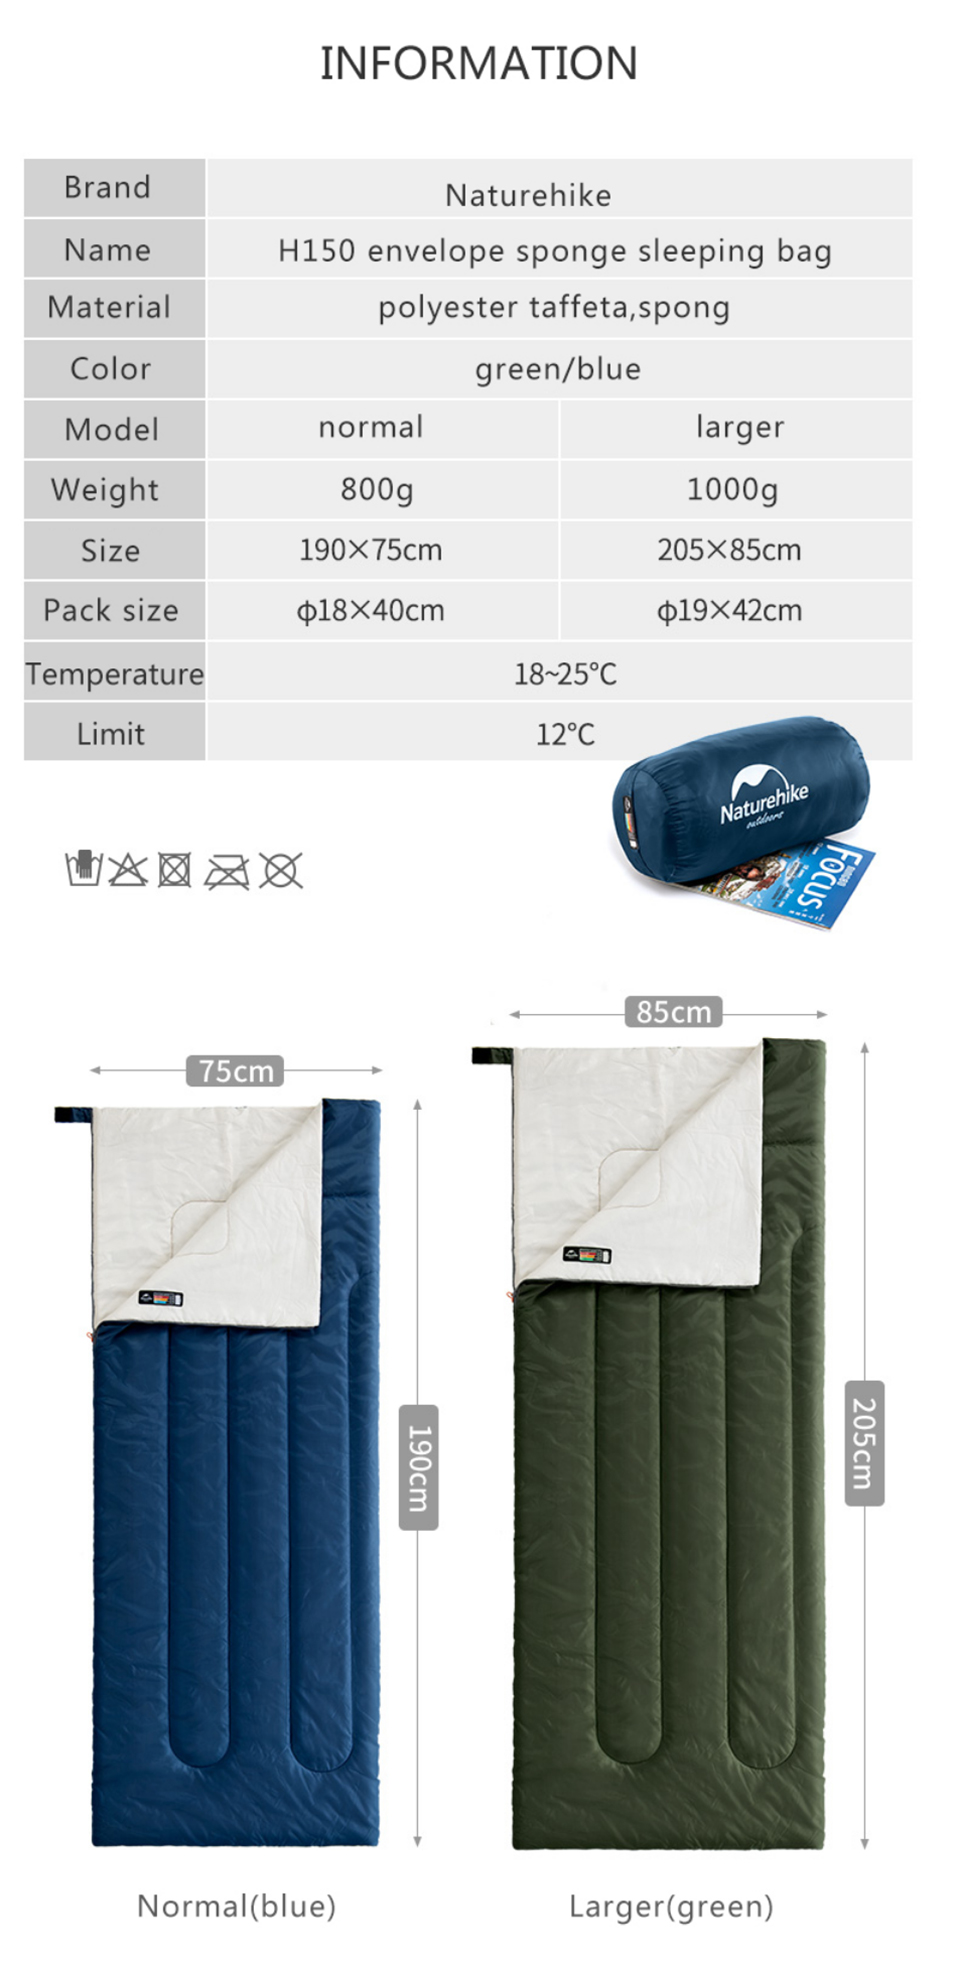 NatureHike-Sleeping-Bag-Camping-Envelope-Sleeping_06